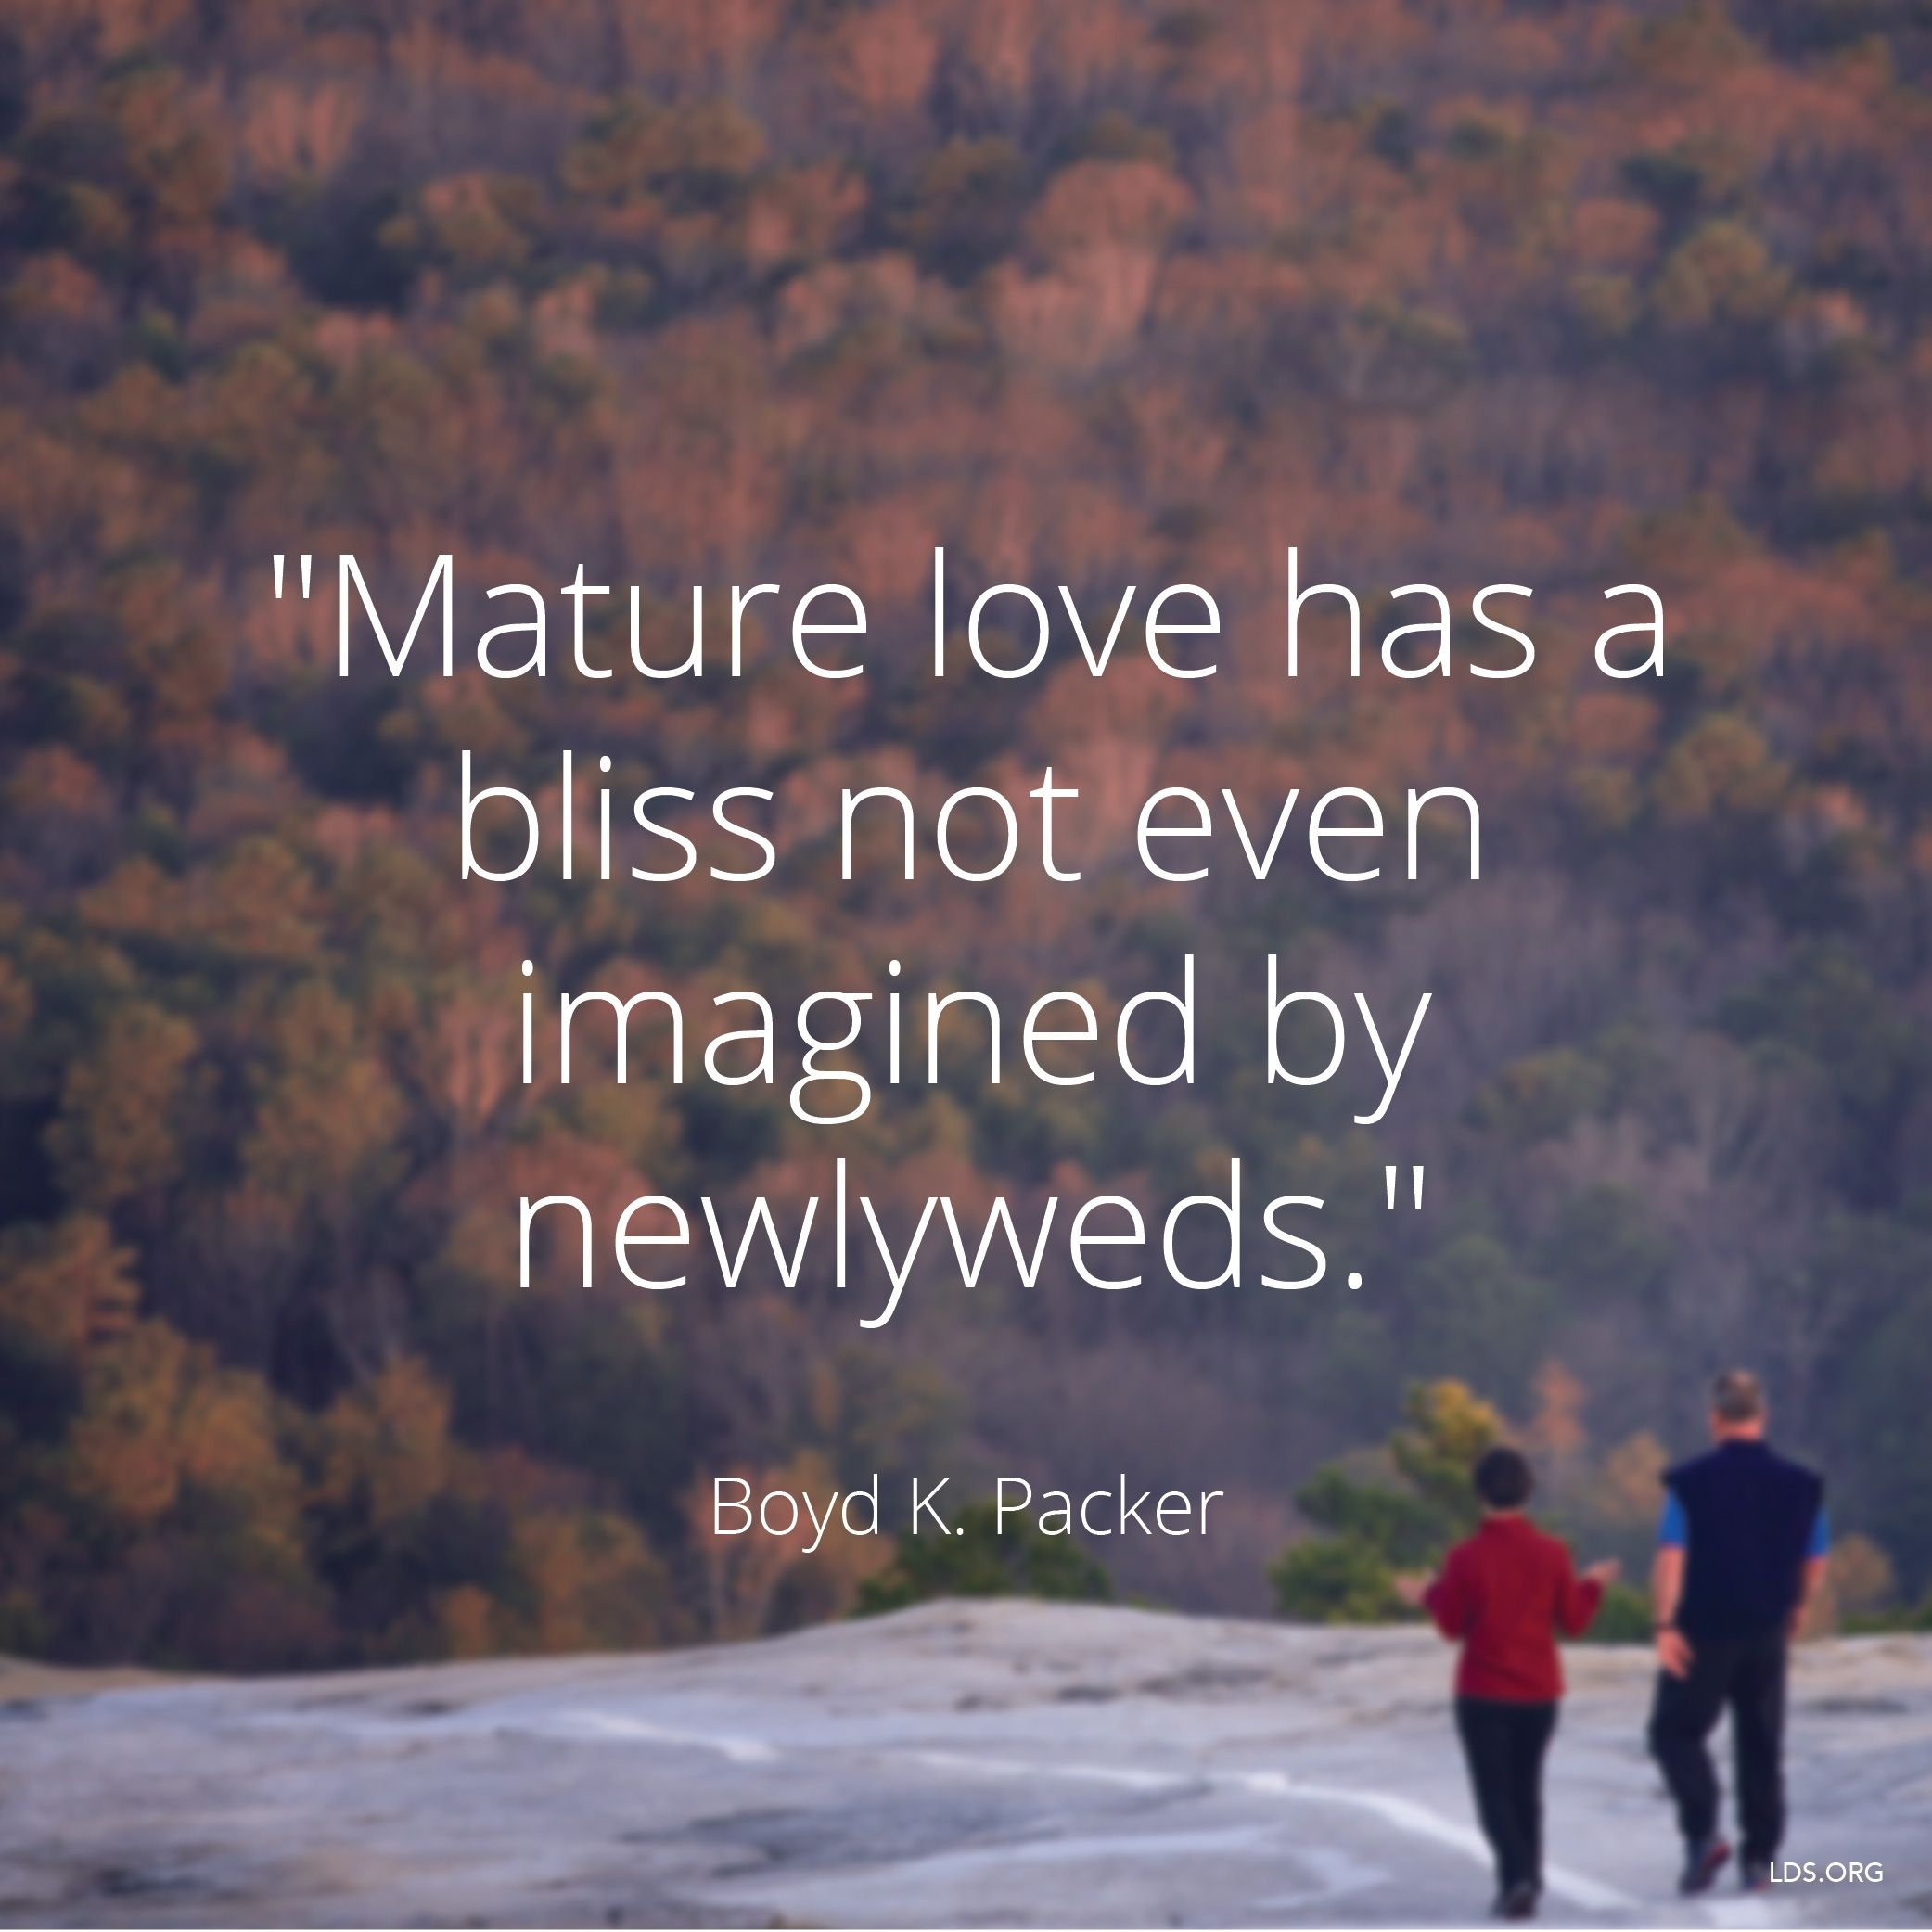 """""""Mature love has a bliss not even imagined by newlyweds.""""—President Boyd K. Packer, """"The Plan of Happiness"""""""